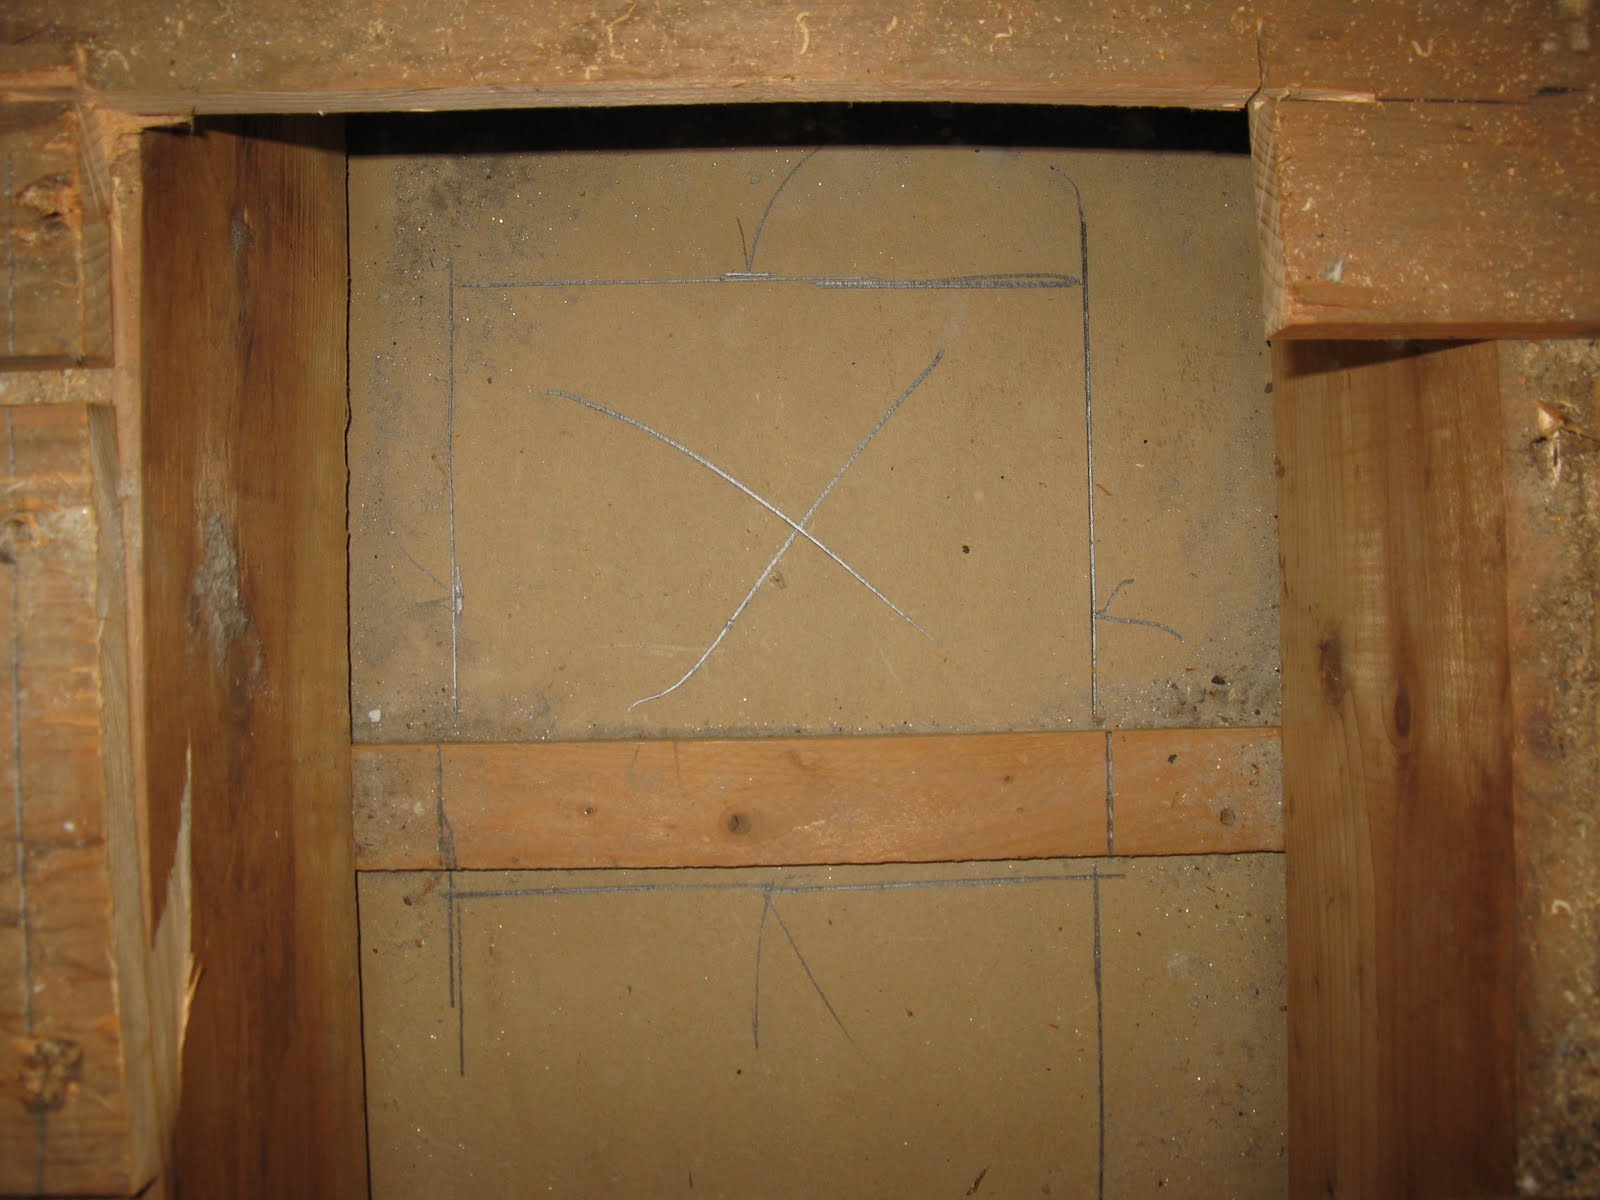 How to cut base molding around wall vent - New Hole Cut Blocking Was Added And Vent Box Was Squared And Screwed To The Blocking